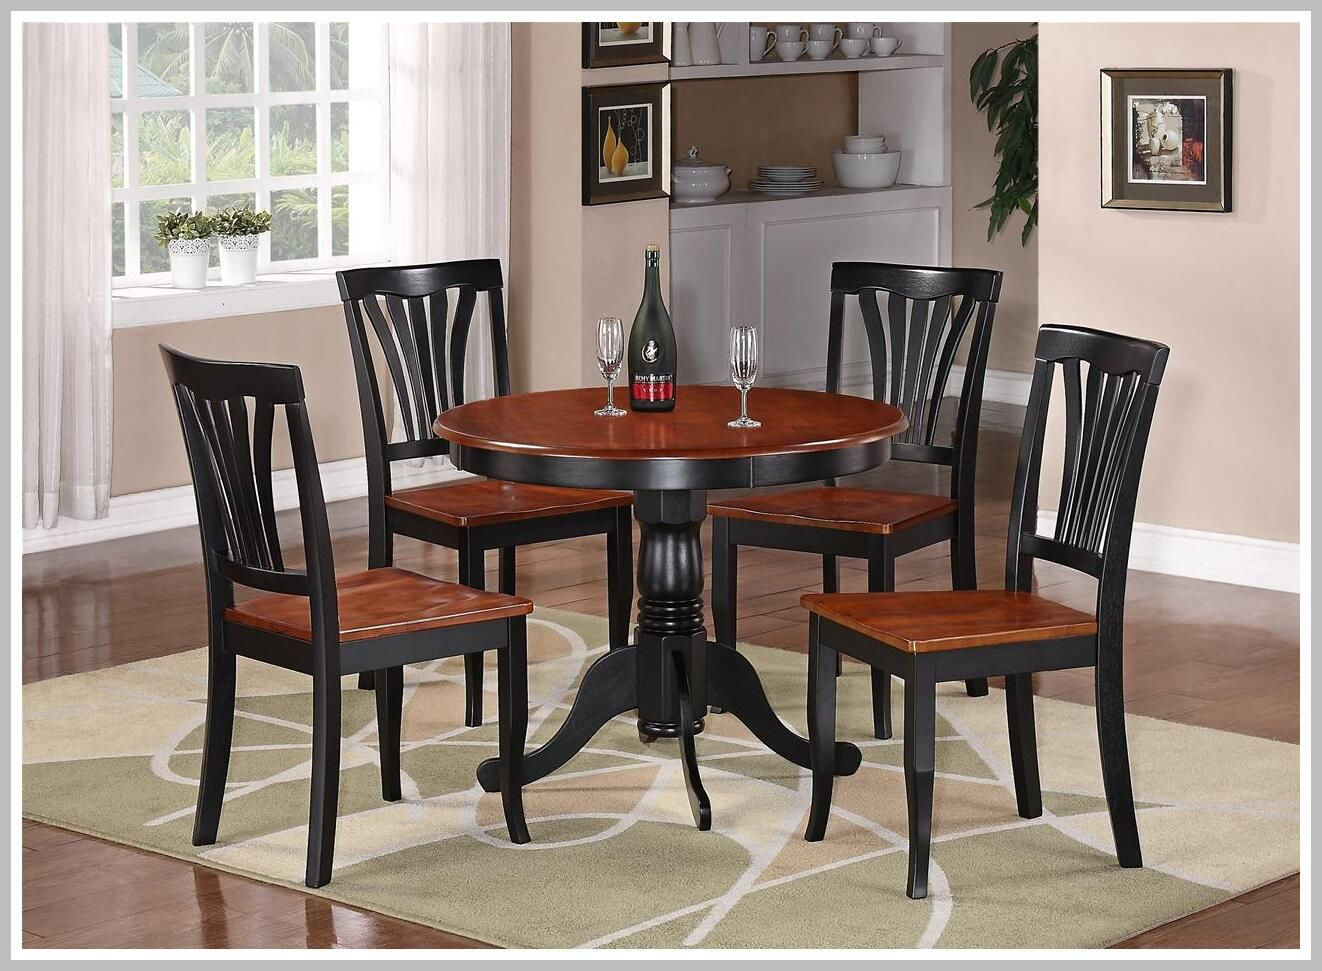 95 Reference Of Dining Table Chairs White And Brown Round Kitchen Table Set Cherry Kitchen Table Kitchen Table Settings